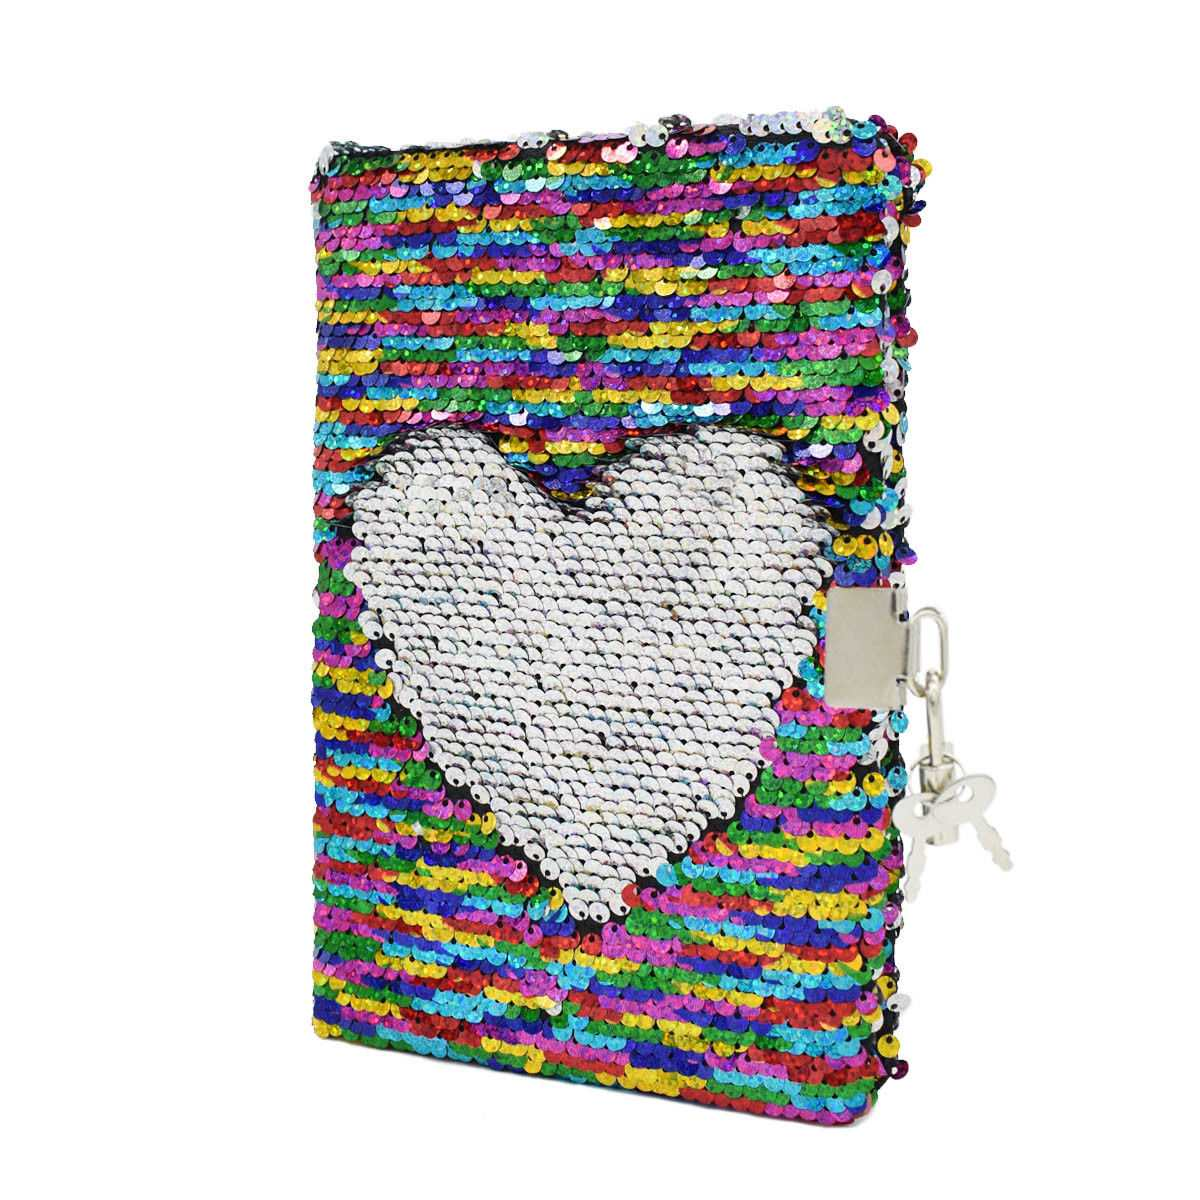 Random Pattern Festival Gifts Reversible Glitter Sequin Journal Office Diary Notebooks School Memos With Lock For Kid Girl Adult